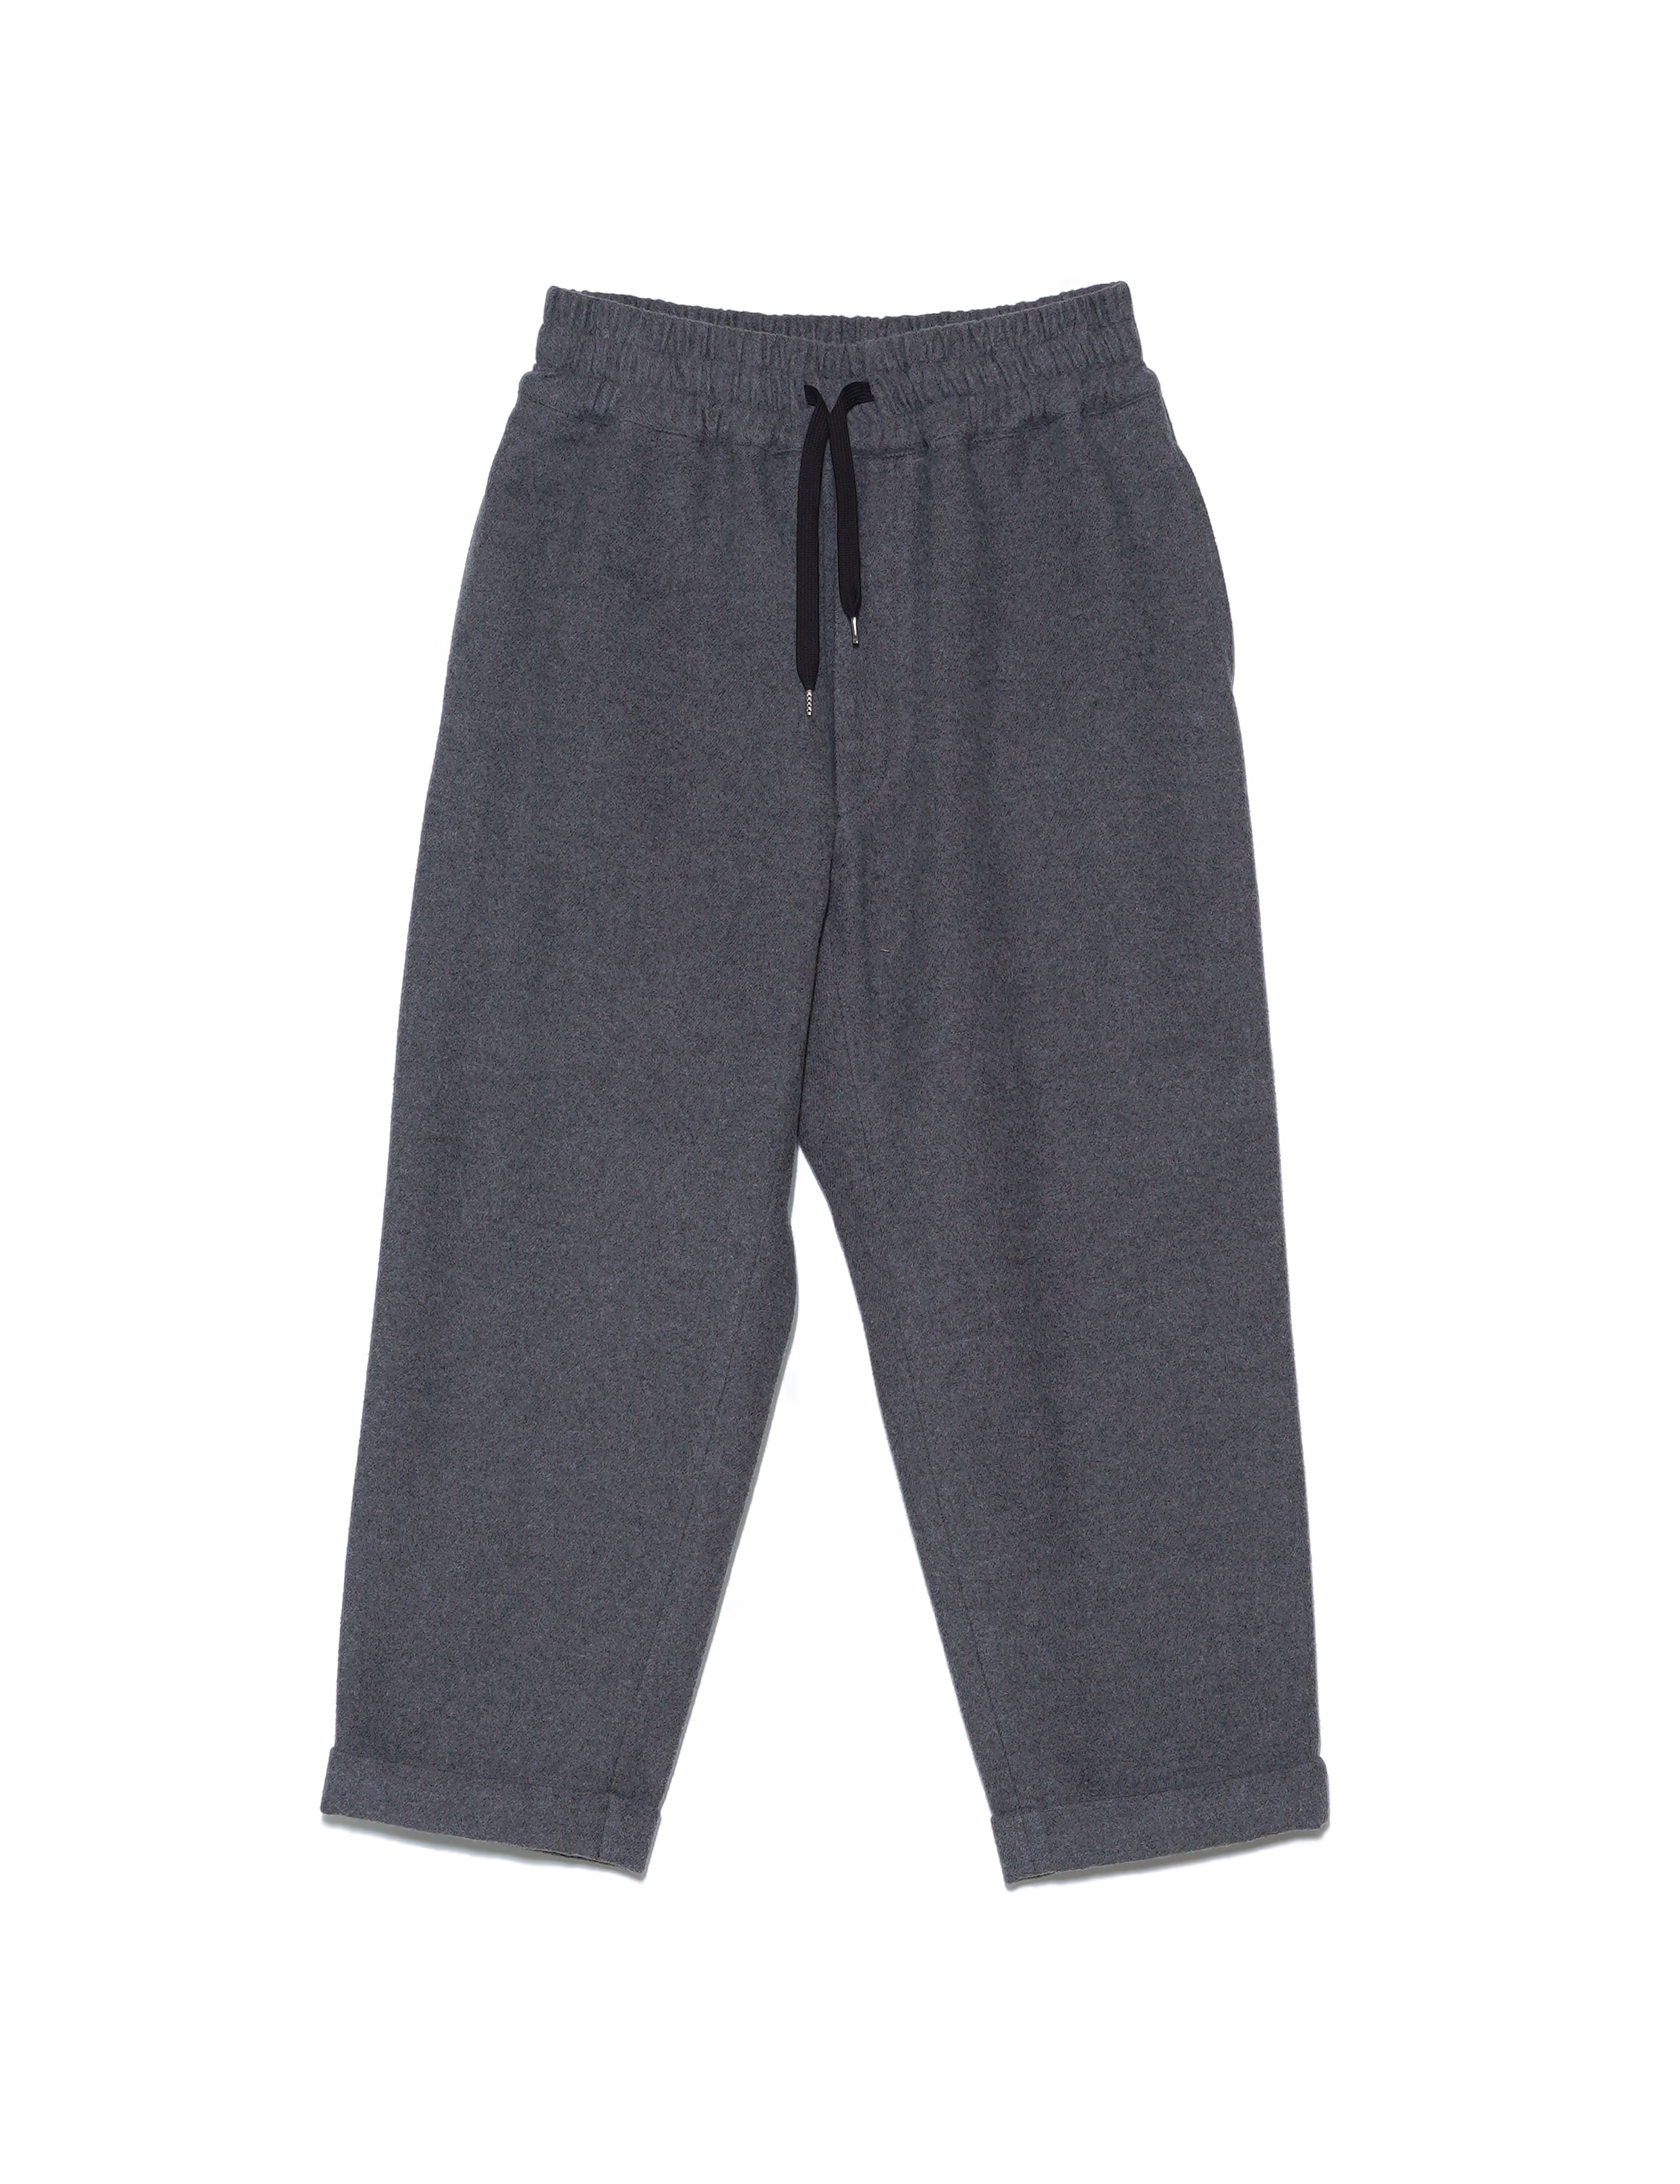 GUM SLACKS (GRAY)